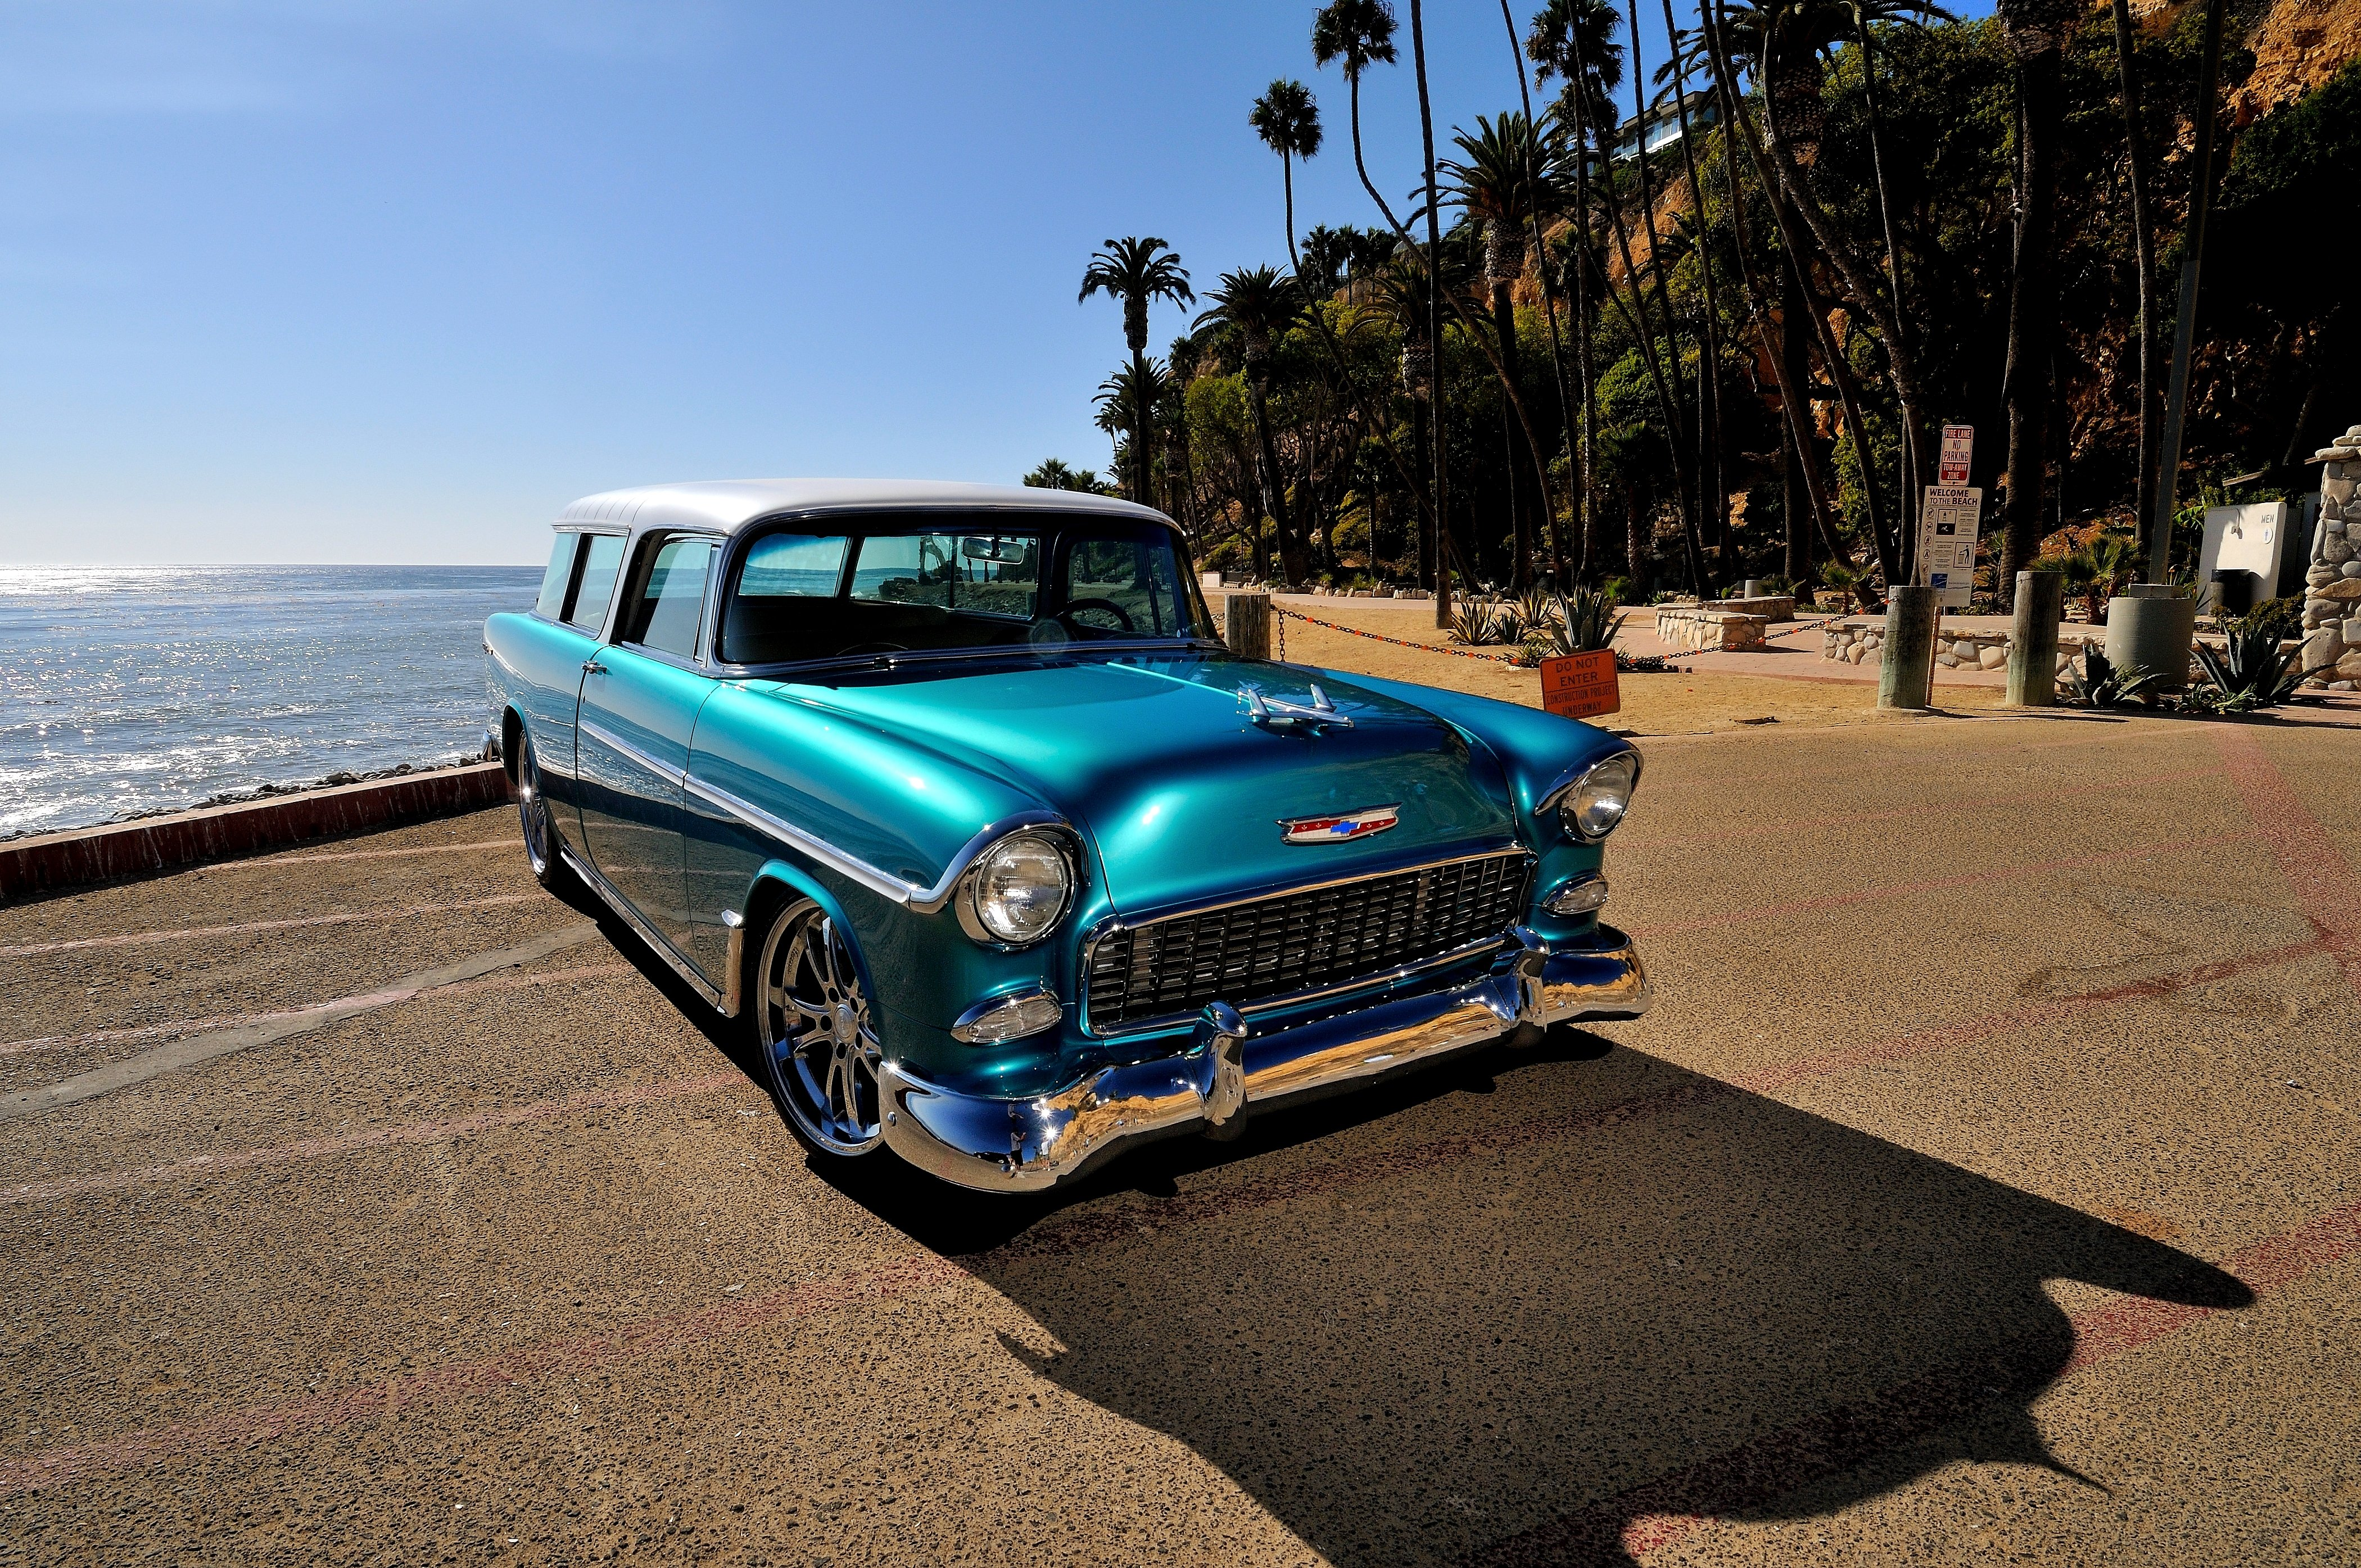 4200x2790 - Chevrolet Nomad Wallpapers 2